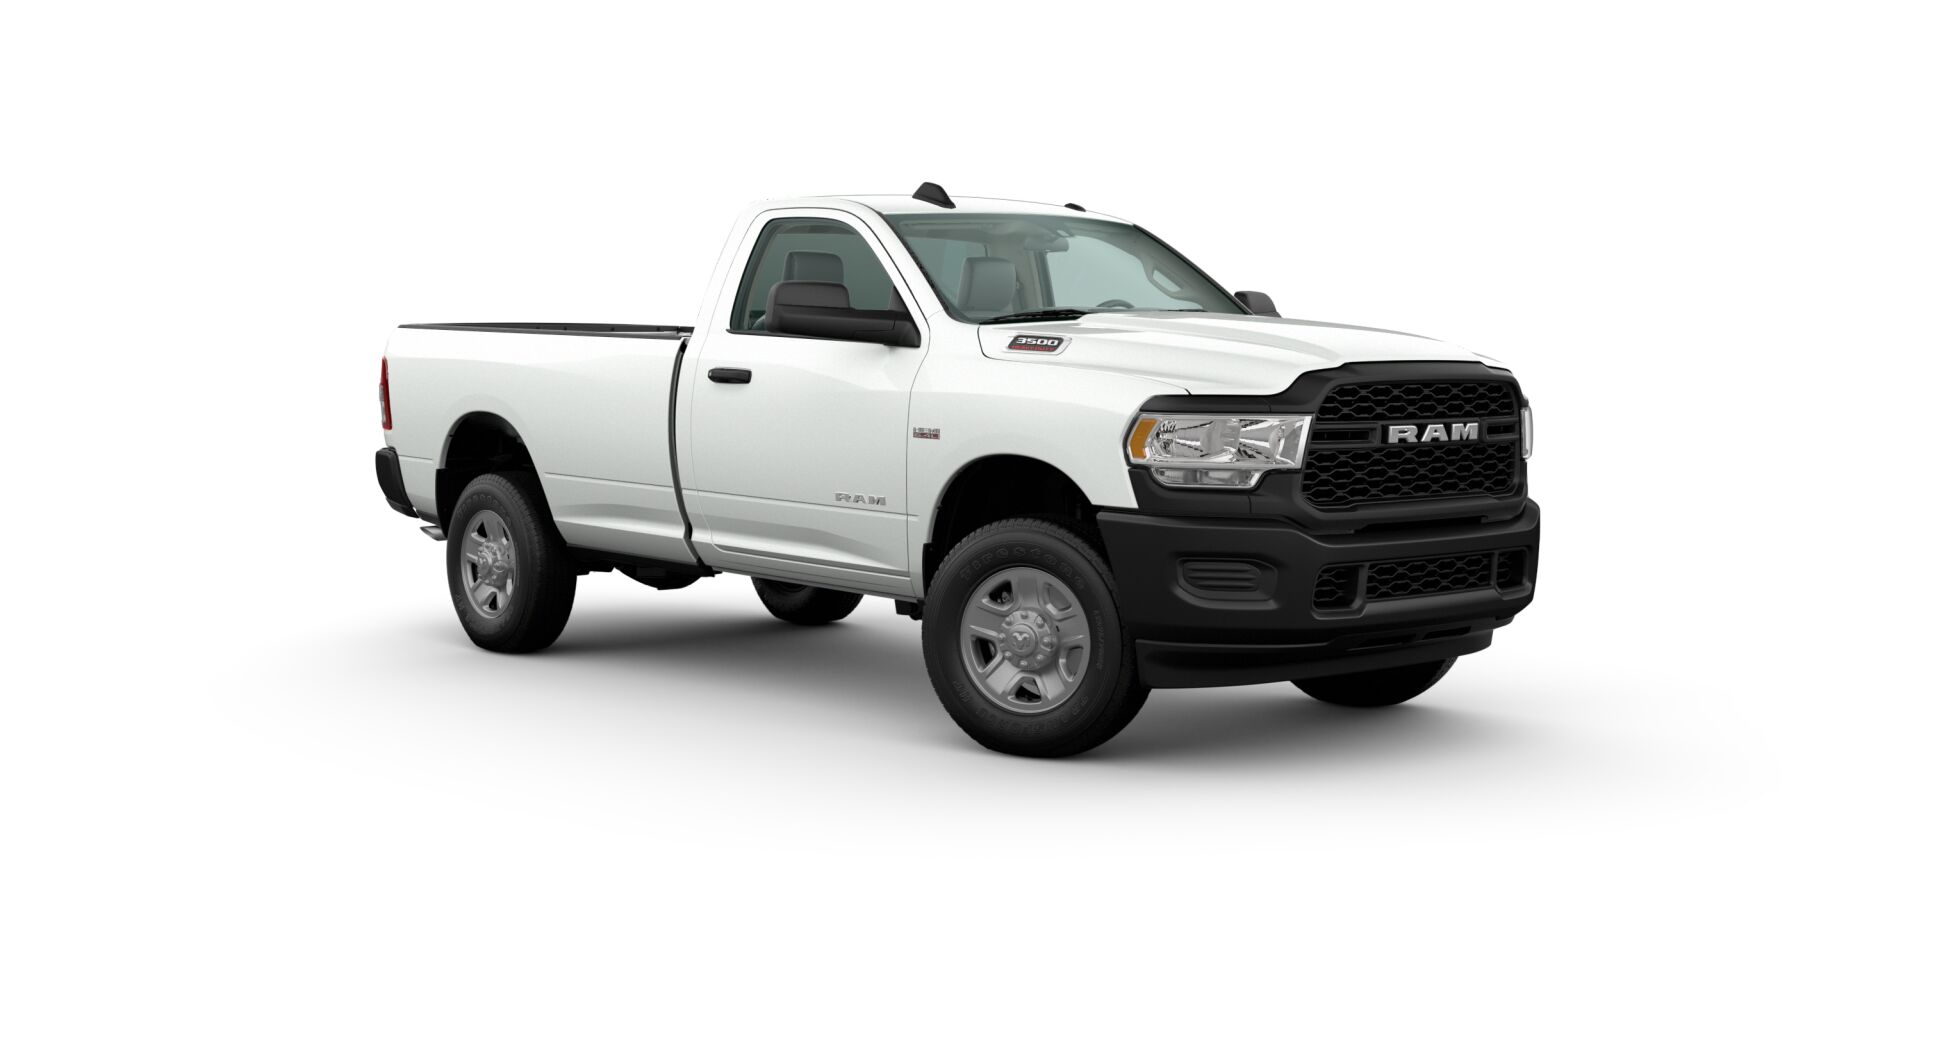 2020 Ram 3500 Front View White Exterior Picture.jfif